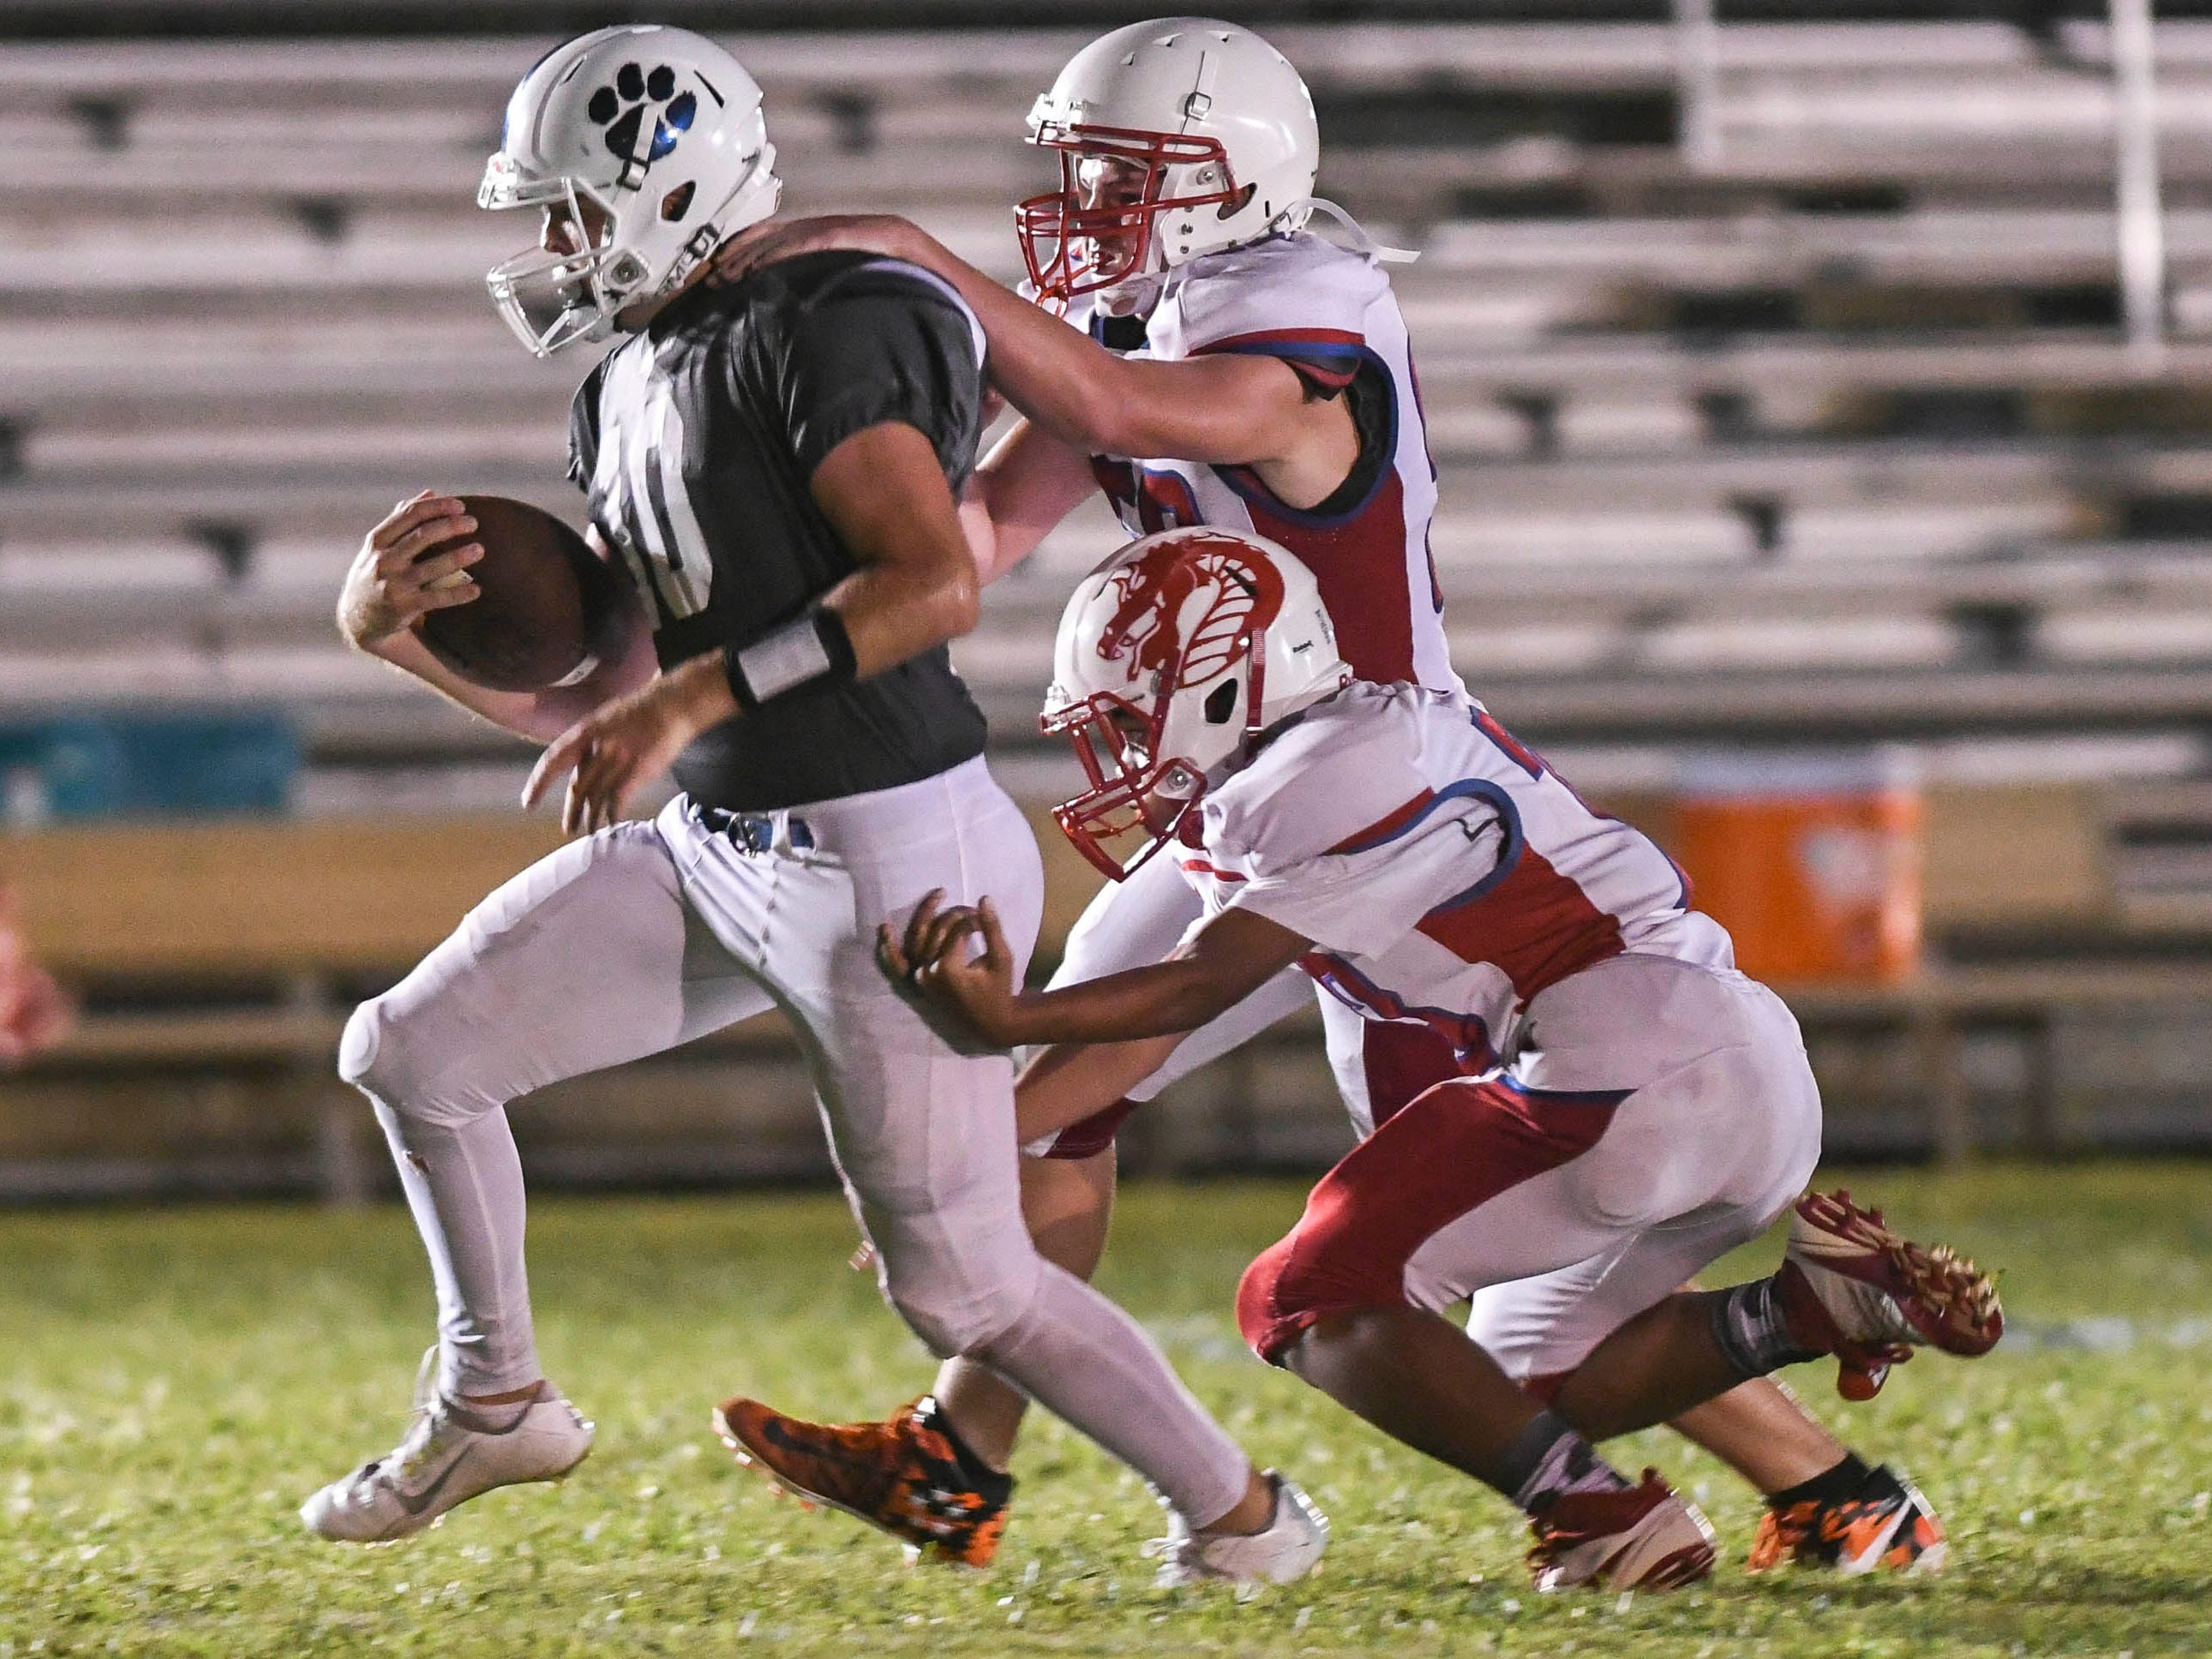 Merritt Island Christian QB Carson Brogdon is dragged down by Garrett Hunt (50) and Malcolm Rosebud (73) of Florida School for the Dead during Thursday's game.